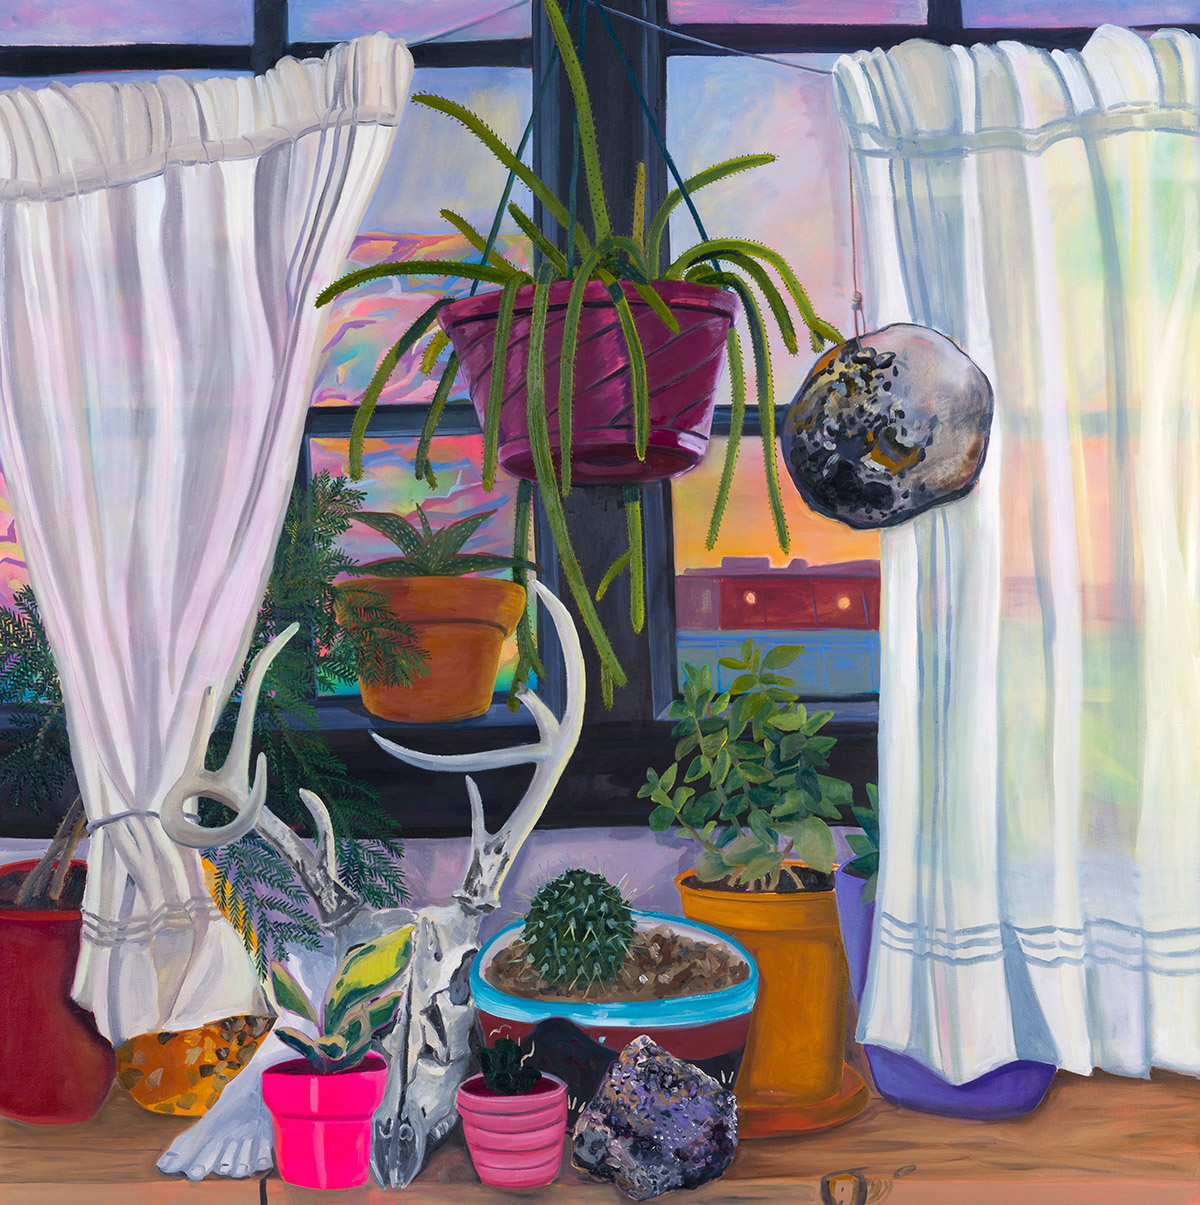 Le colorate nature morte di Anna Valdez | Collater.al